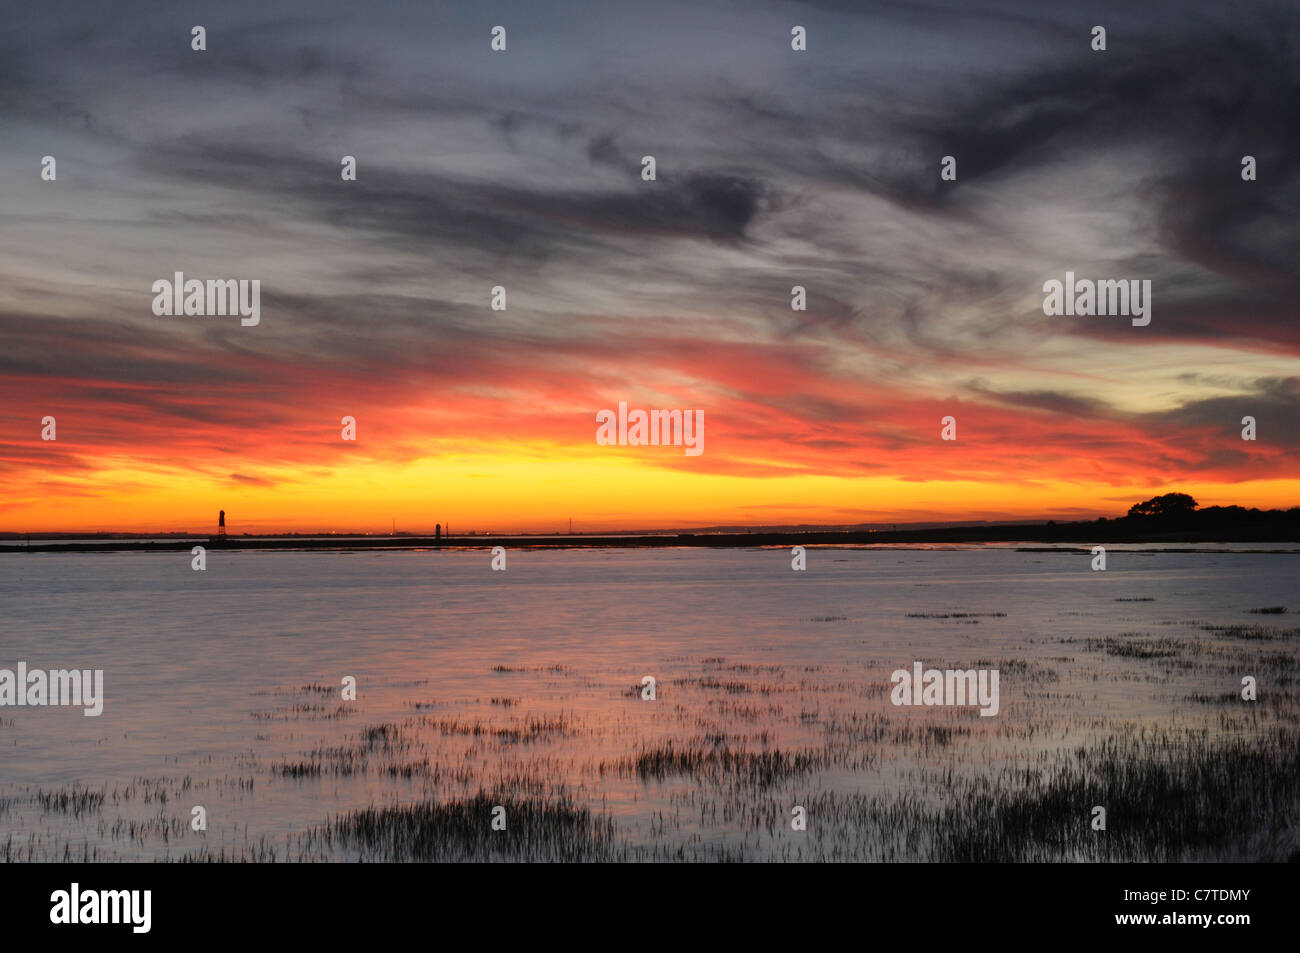 Sunset at Paull Holme Strays nature reserve, East Yorkshire, England Stock Photo